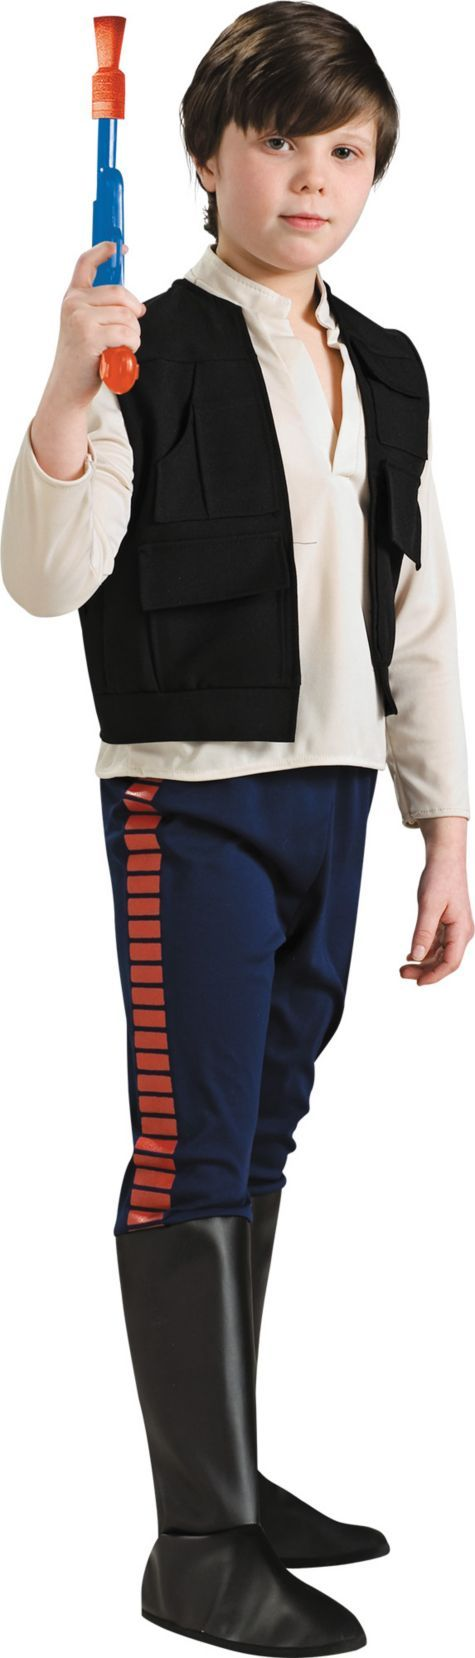 Boys Han Solo Costume - Star Wars Deluxe - New Costumes - Boys Costumes - Halloween Costumes - Party City